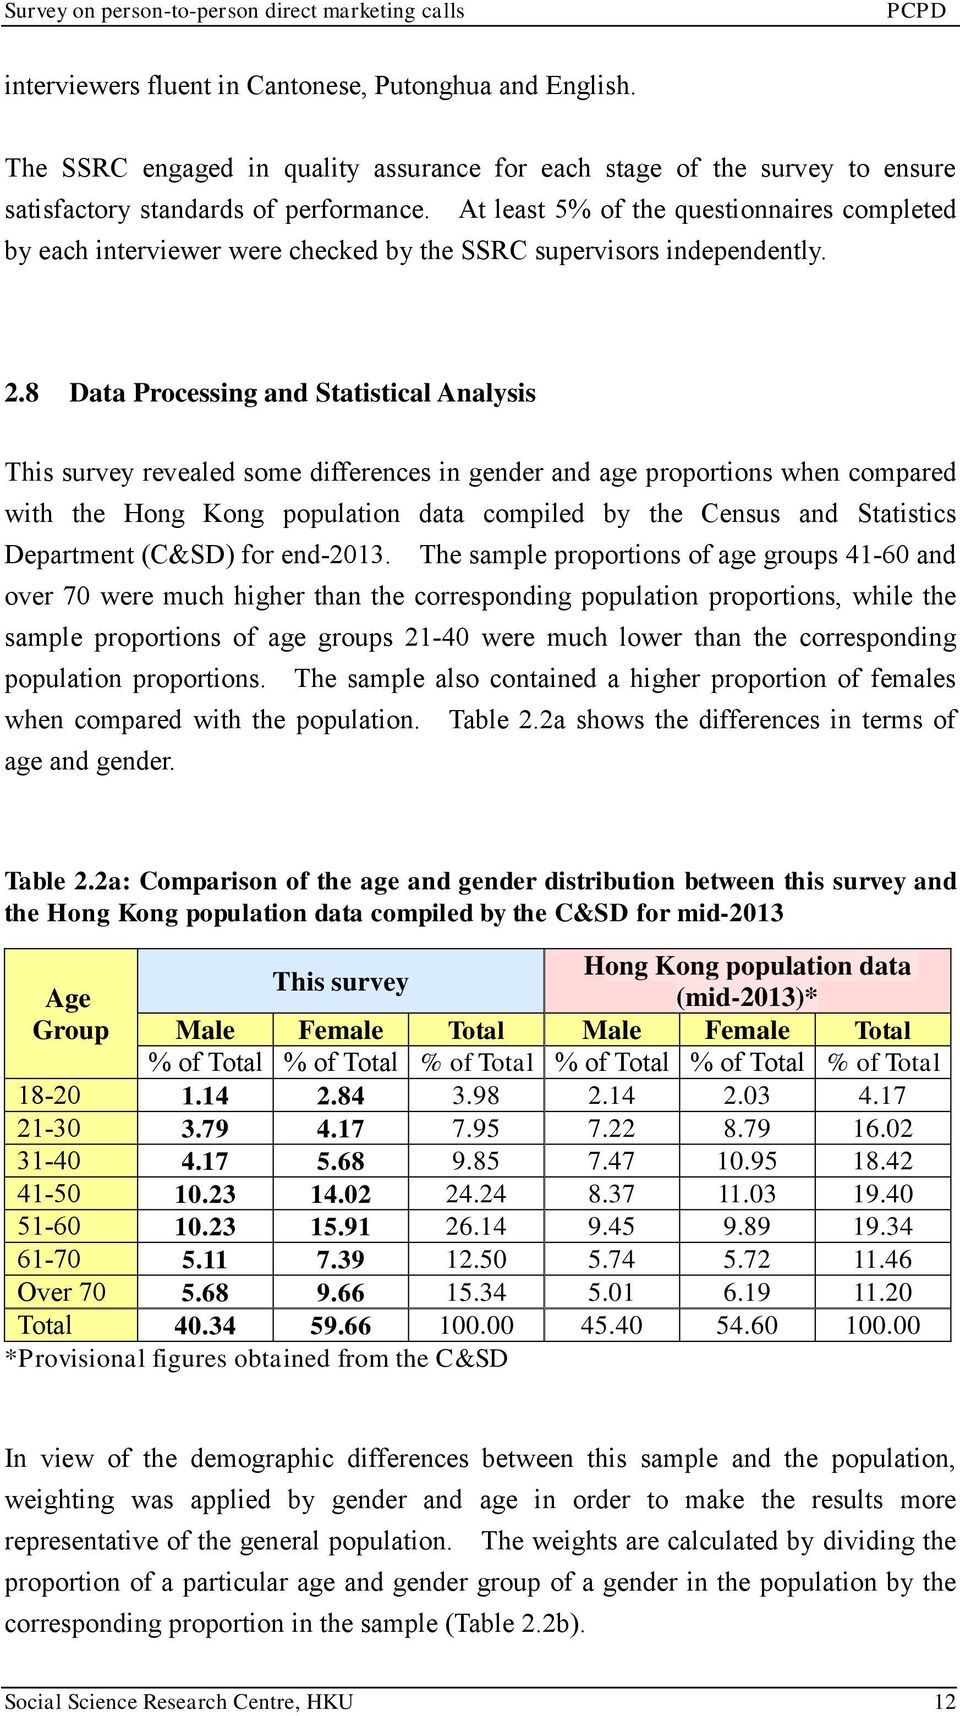 8 Data Processing and Statistical Analysis This survey revealed some differences in gender and age proportions when compared with the Hong Kong population data compiled by the Census and Statistics